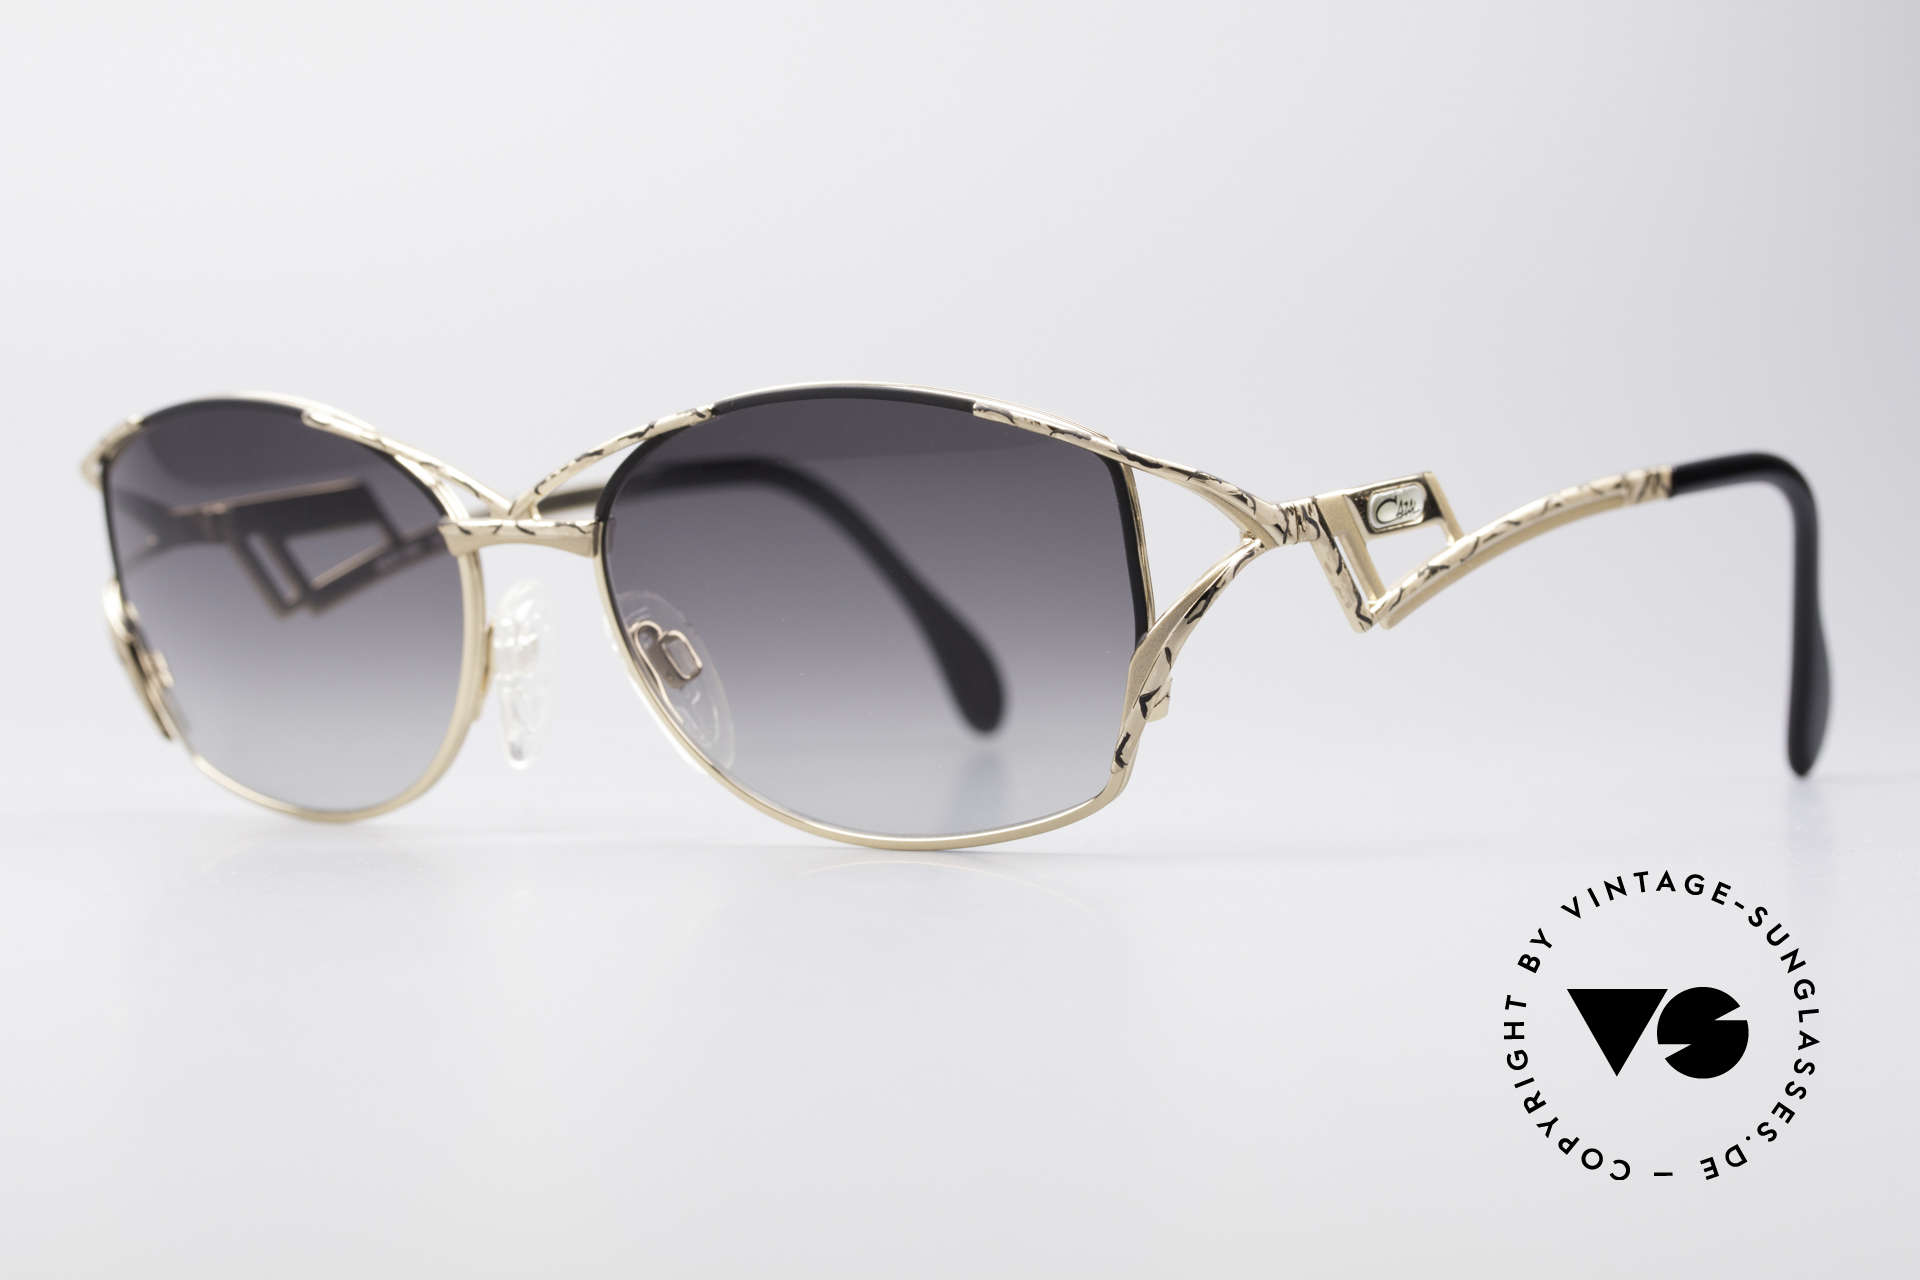 Cazal 284 Luxury Vintage Sunglasses 90's, fancy temples and overall very noble frame finish, Made for Women